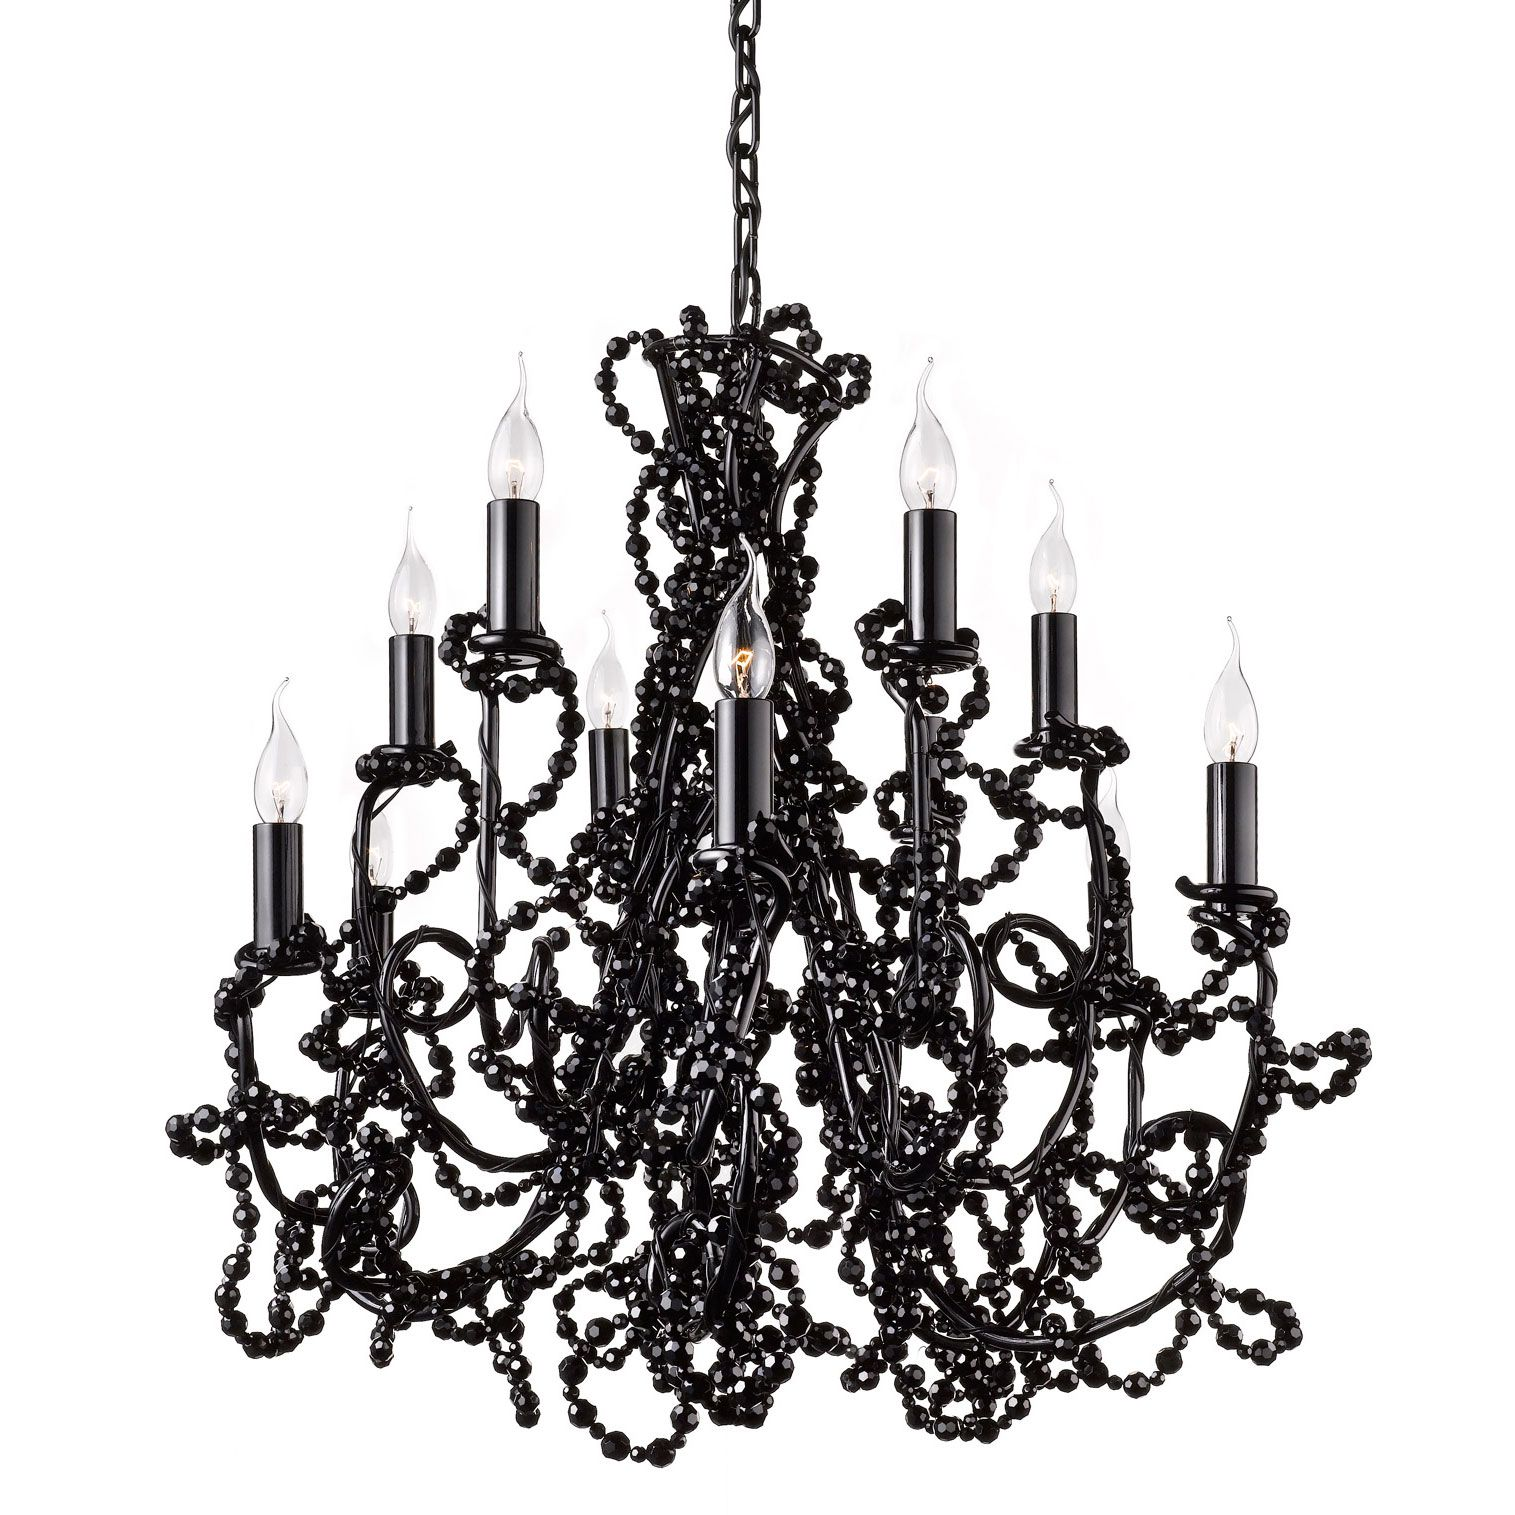 From lightology coco small chandelier round is made of steel draped coco small chandelier round is made of steel draped with crystals arubaitofo Image collections